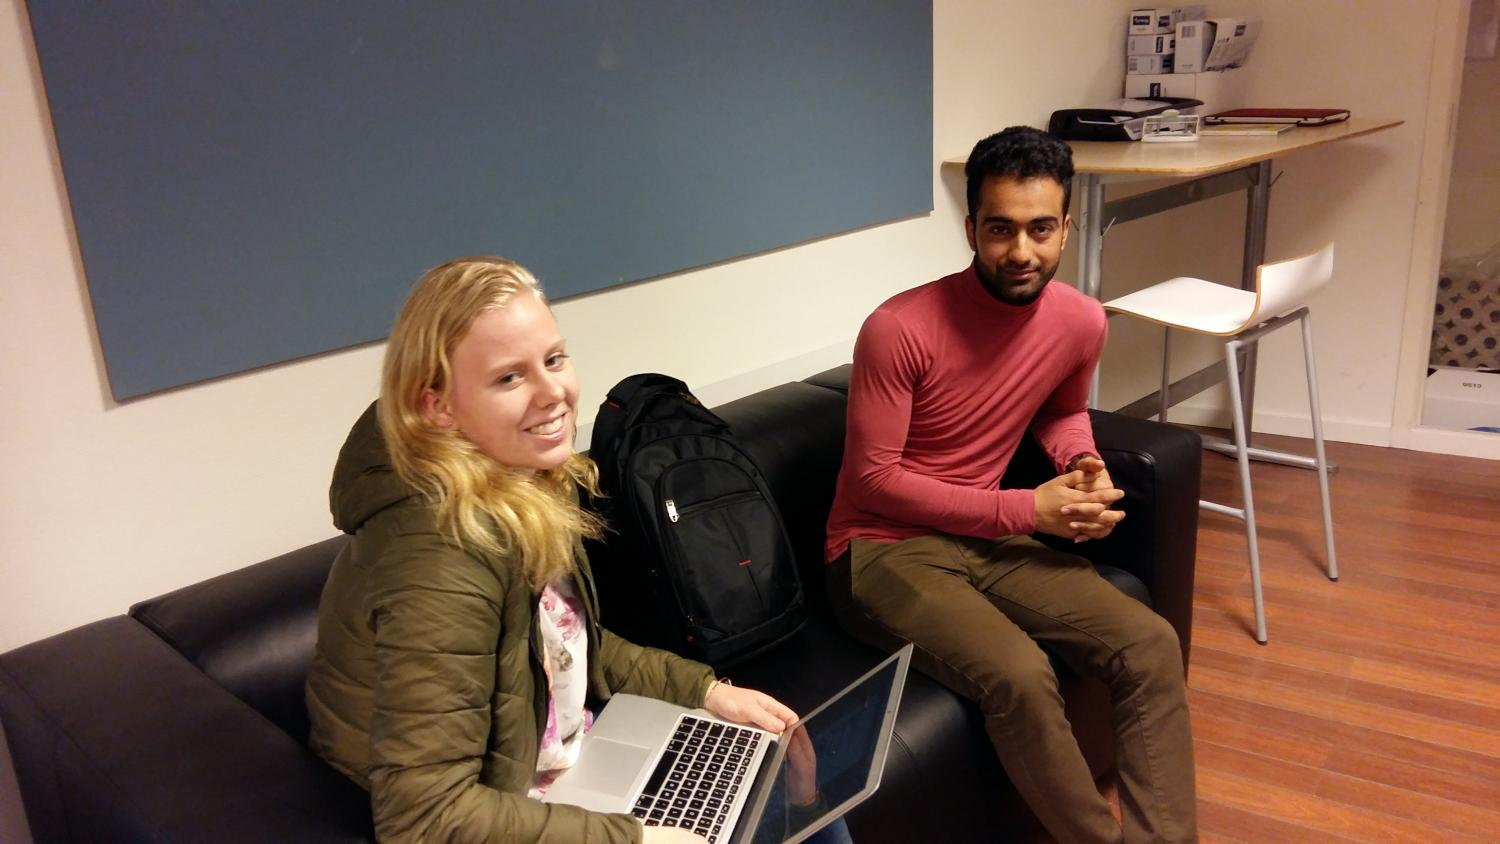 Our QQ editor Sophie and Shahram